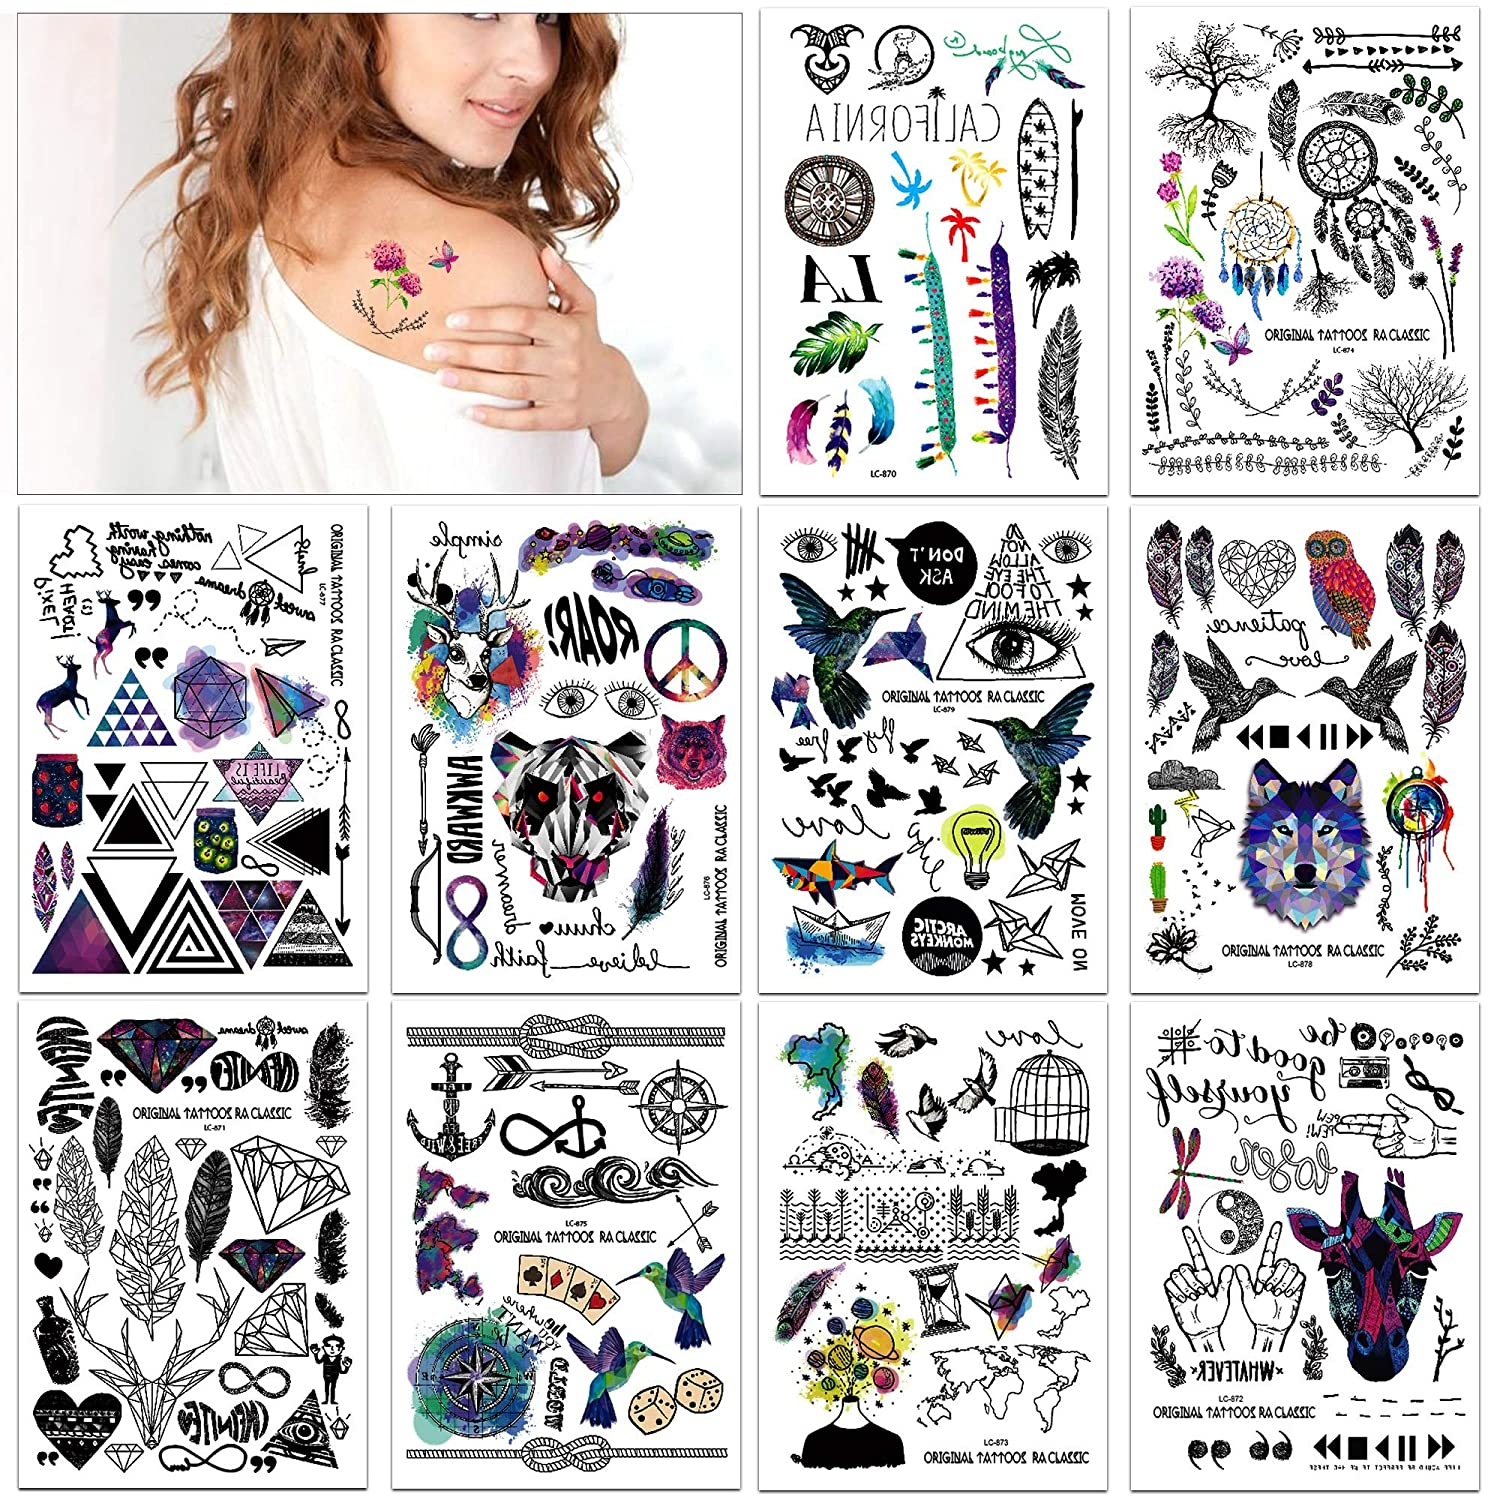 Temporary Tattoos Stickers(10Sheets 237Designs),Konsait Realistic Fake Tribal Body Temporary Tattoos Supplies Temporary Rose Eye Tattoos for Dream Party for Kids Adult Women Men Boys Girls